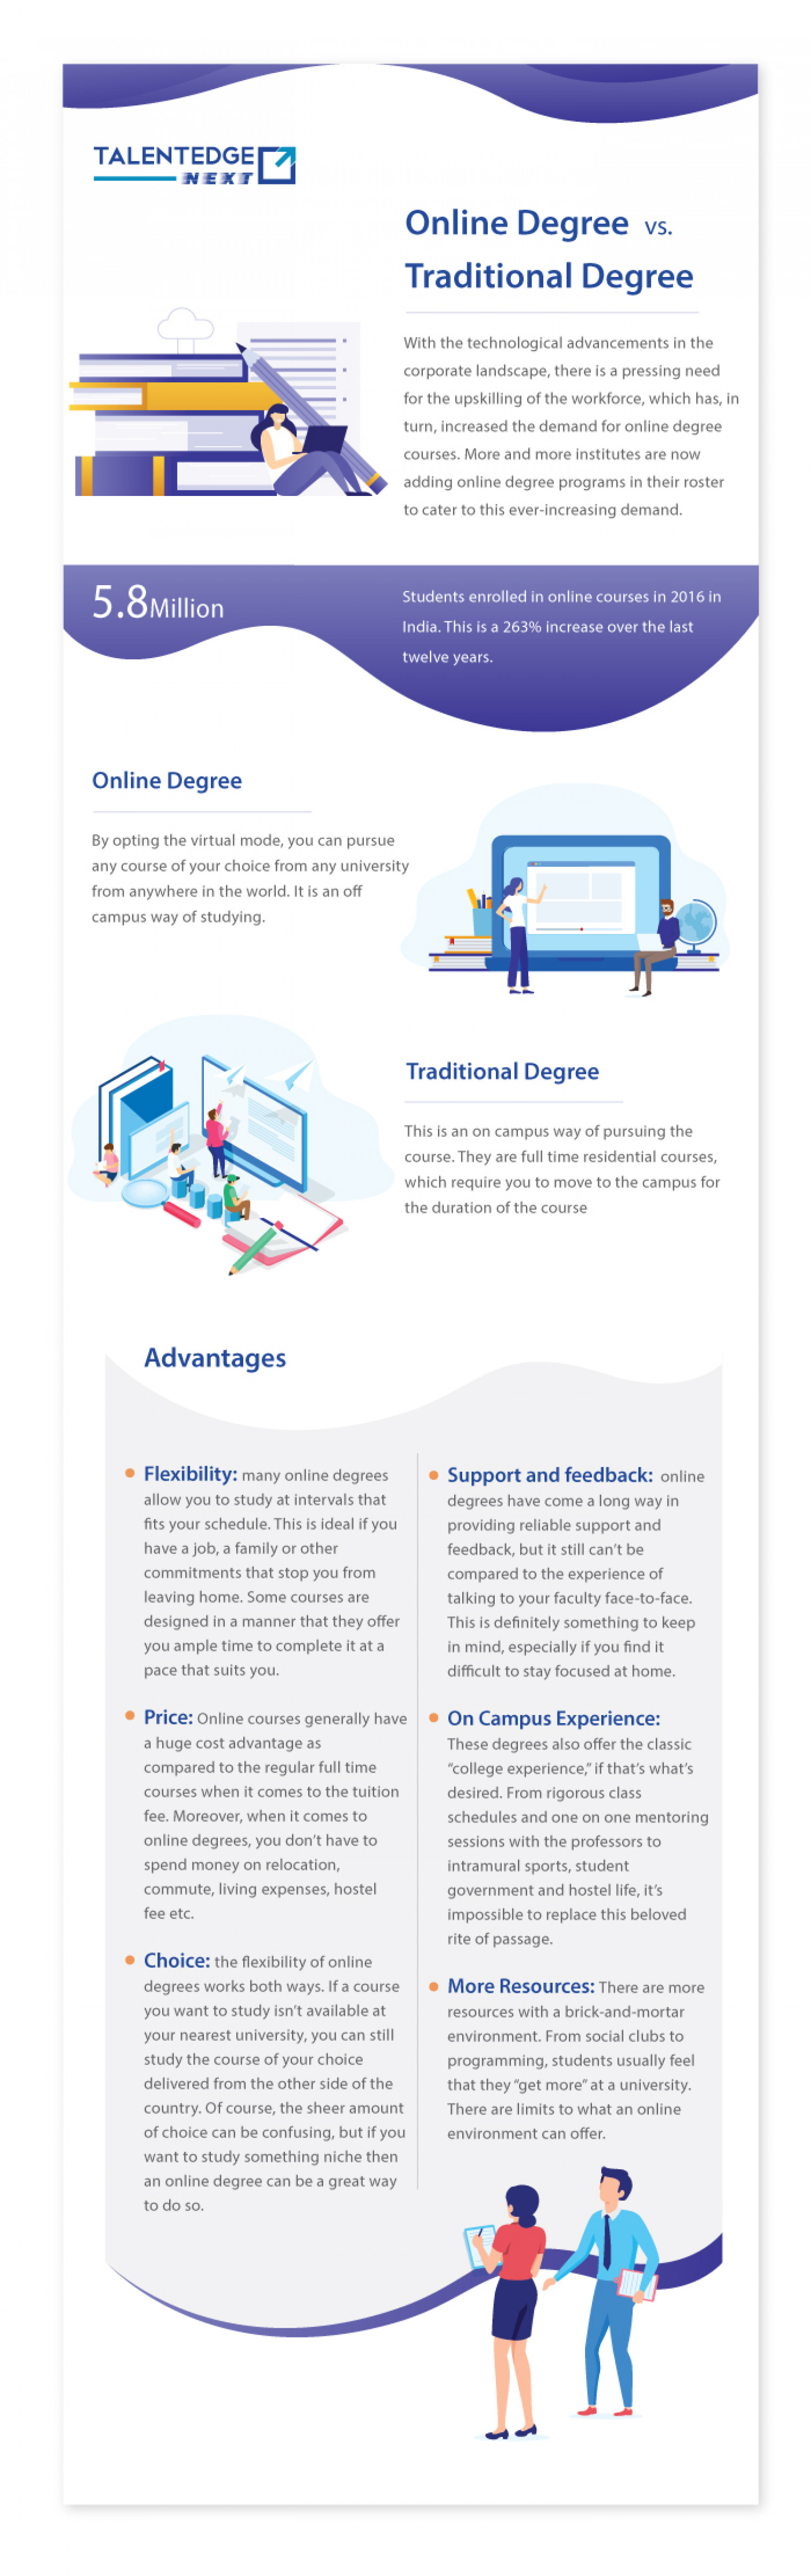 Online Degree Vs. Traditional Degree - TalentedgeNext Infographic